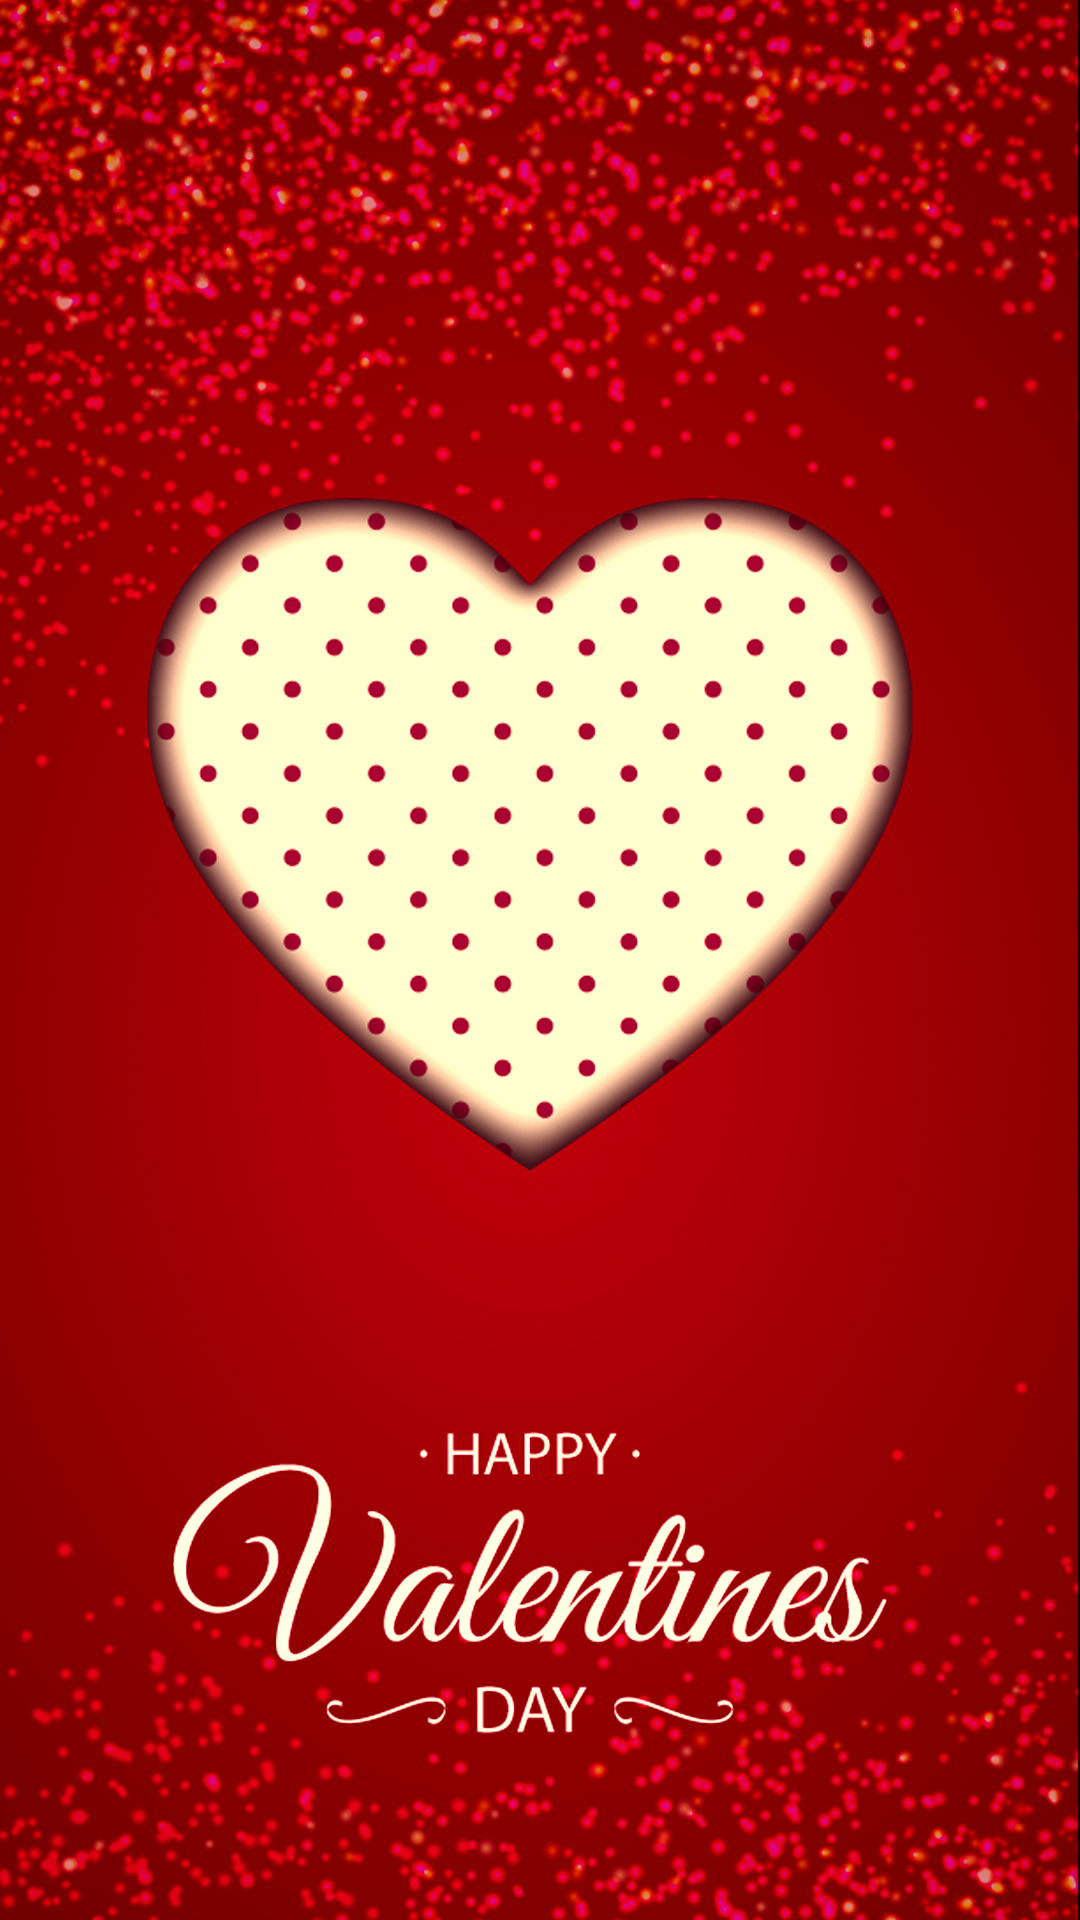 Pin By Leah Hauck On Wallpapers Valentine S Day Valentines Wallpaper Happy Valentines Day Happy Valentine